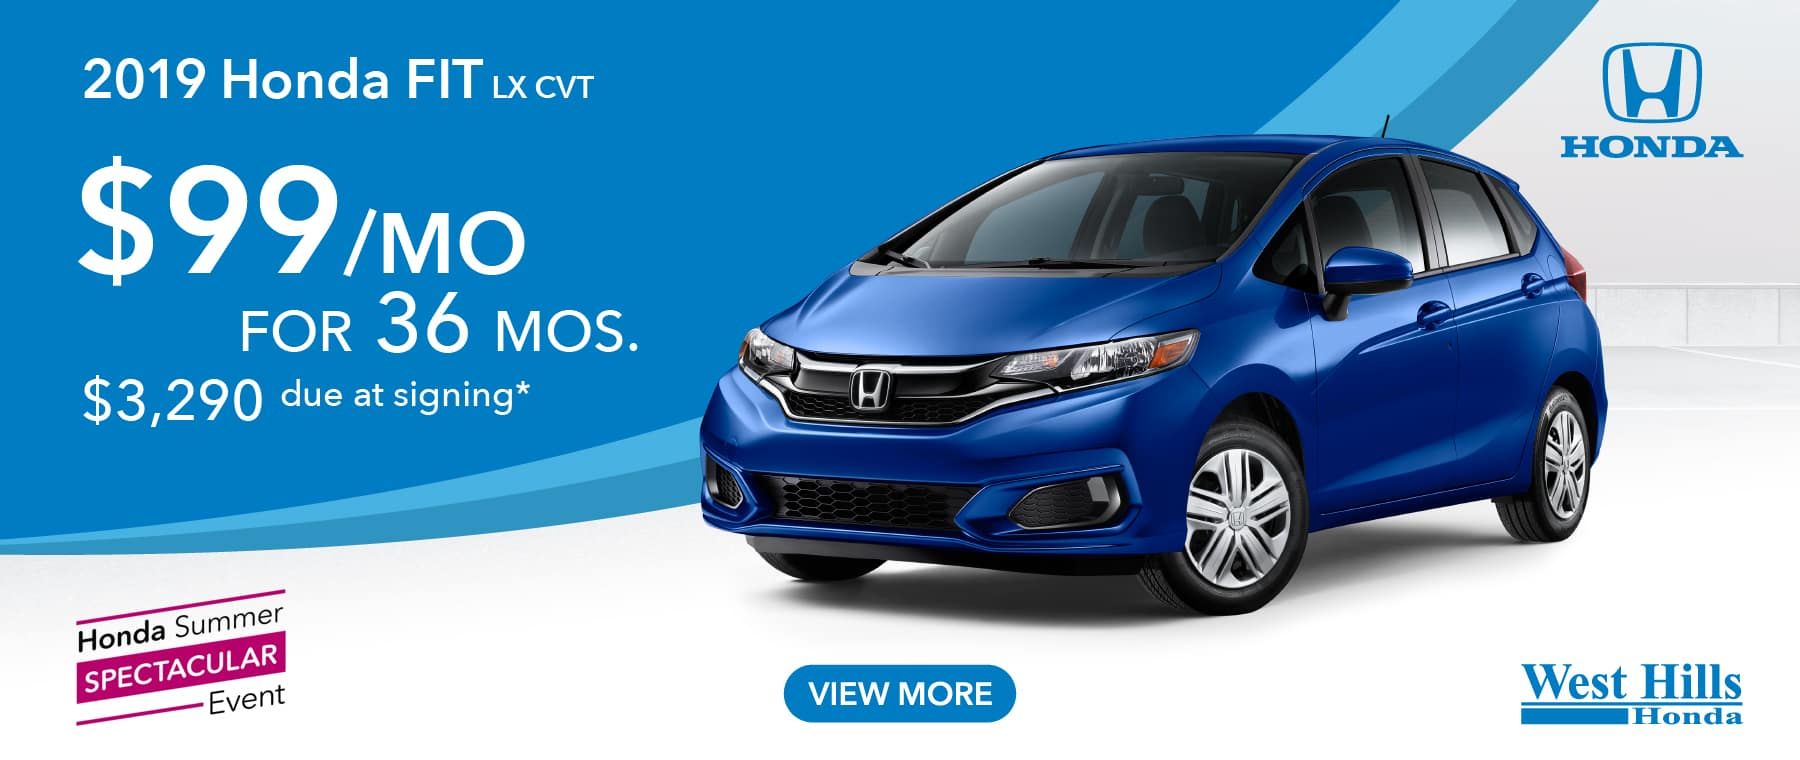 2019 HONDA FIT LX CVT (featured vehicle) $99/mo. for 36 mos. $3,290 due at signing*    *Valid on 2019 HONDA FIT LX CVT. $99 per mo. for 36 months. Lease with $3,290 due at signing; includes a $595 acquisition fee. Valid on VIN: 3HGGK5H46KM731742, 3HGGK5H44KM731030, 3HGGK5H41KM731213. MSRP $17,910. No Security deposit required. Subject to credit approval. 36 monthly payments required. Not all lessees will qualify for lowest payment through participating lender. Residency restrictions apply. Lessee responsible for maintenance, excessive wear/tear and mileage over 12,000 miles per year at $0.15/mile. Option to purchase at lease end. Excludes state and local taxes, tags, registration and title, insurance and dealer charges. A negotiable dealer documentary service fee of up to $150 may be added to the sale price or capitalized cost. Offer expires 9/3/2019.